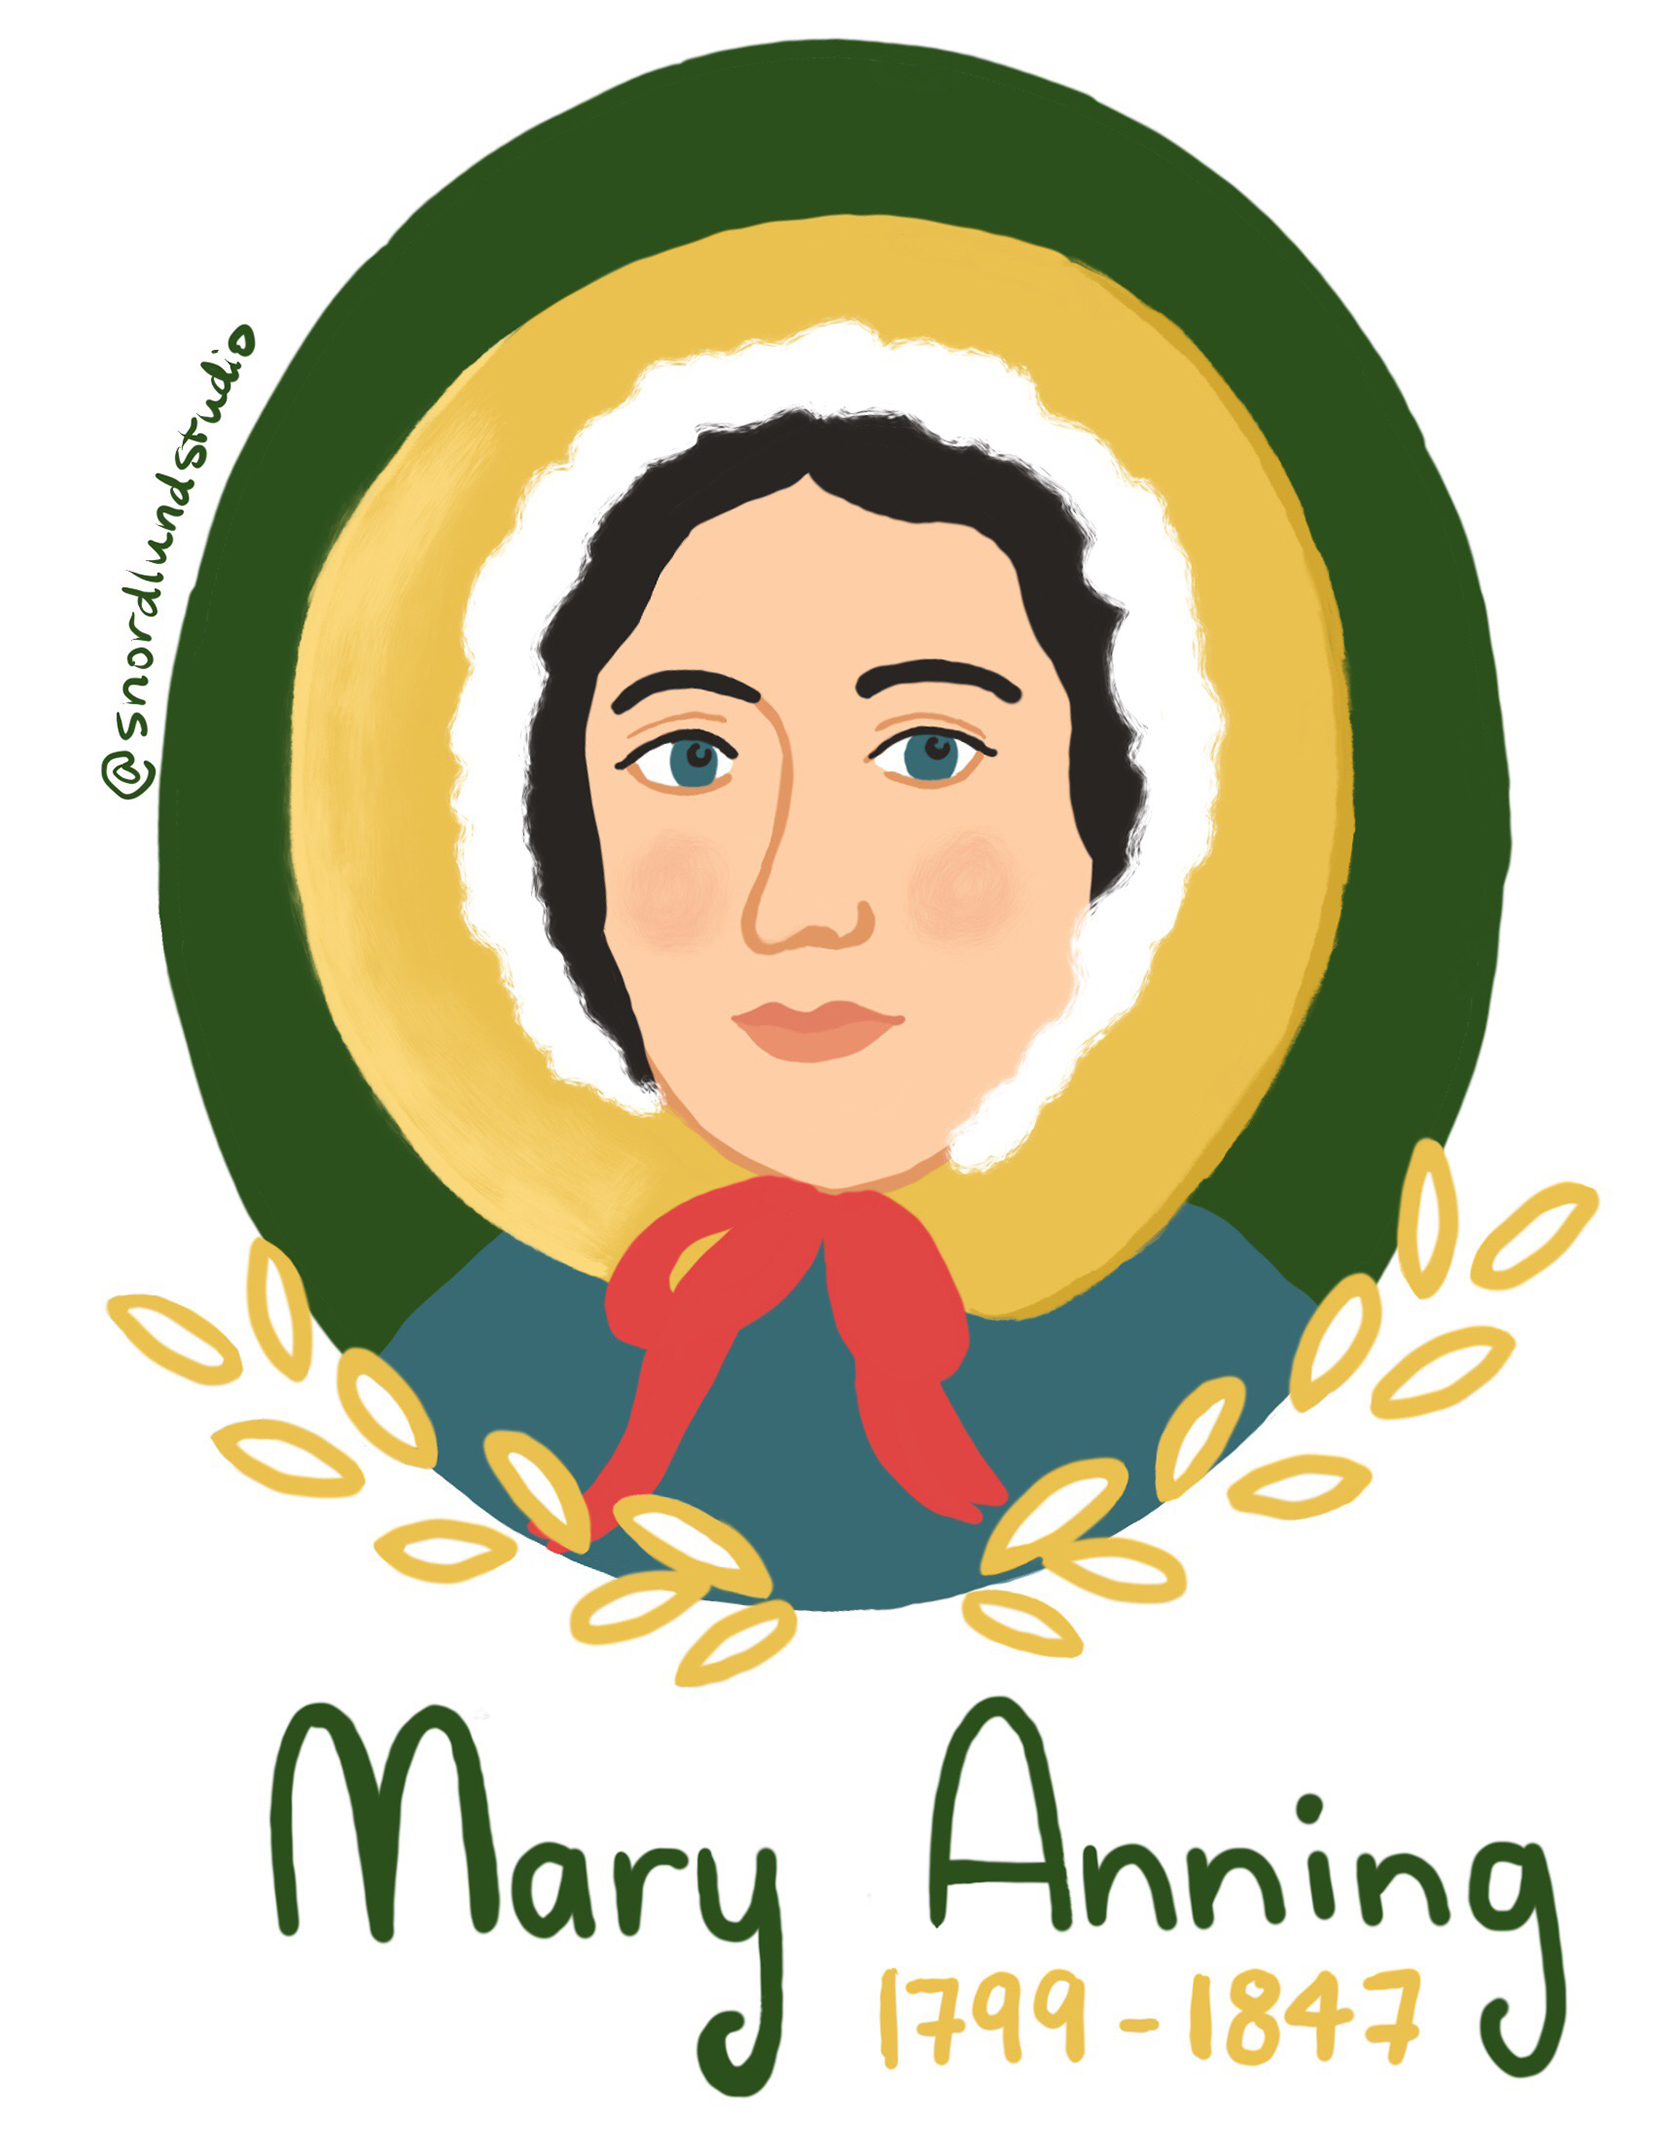 1. Mary Anning - Mary Anning (1799-1847) was a paleontologist, geologist, scientific illustrator, and business owner.